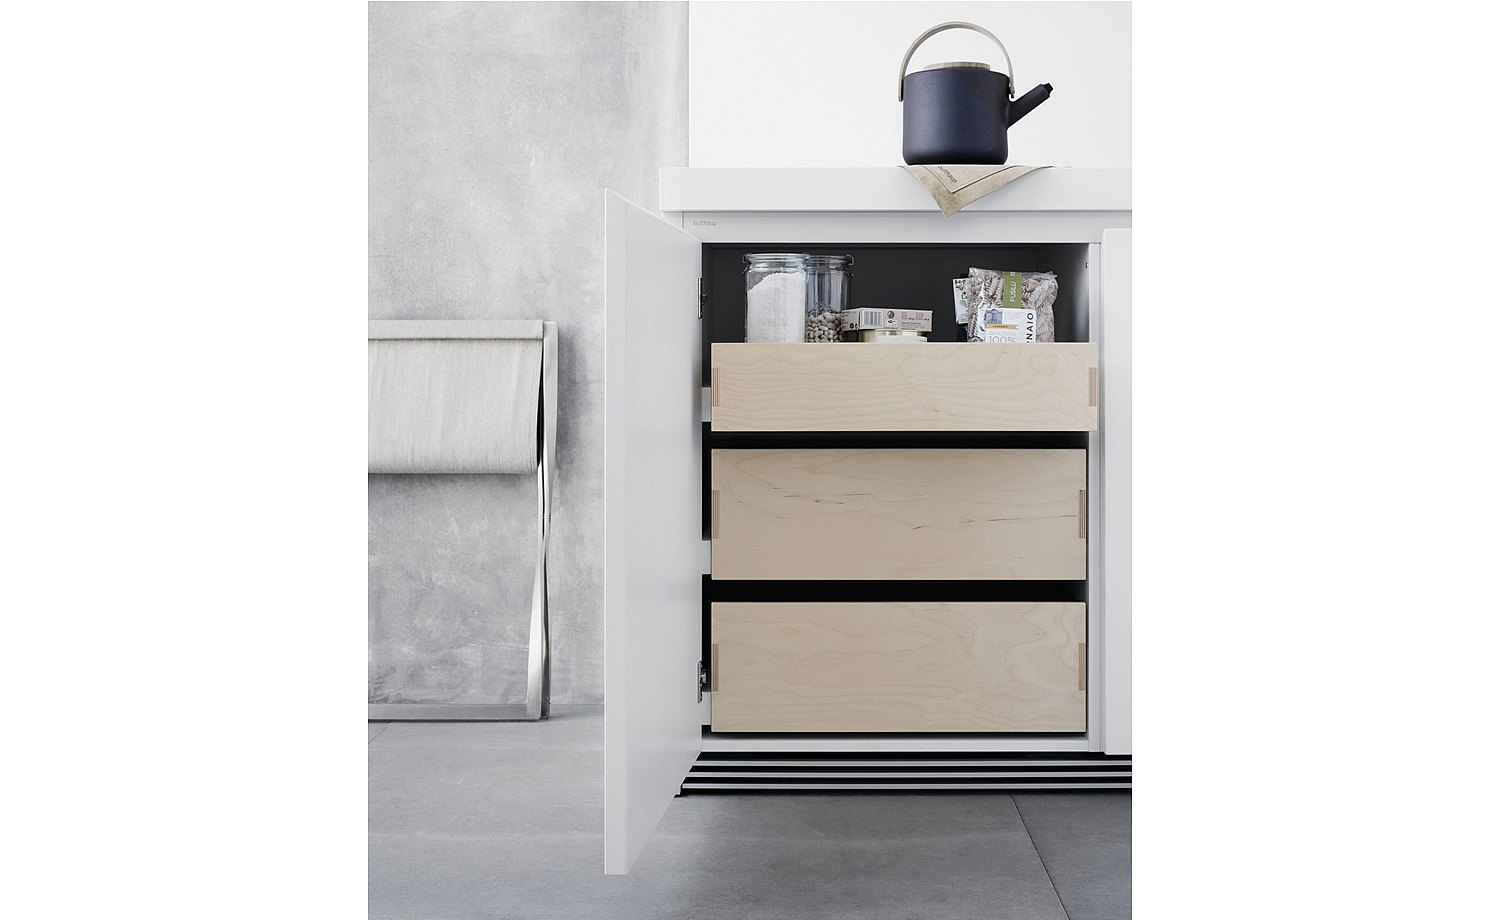 Different height drawers behind the front door panels make the cabinet contents particularly easy to access